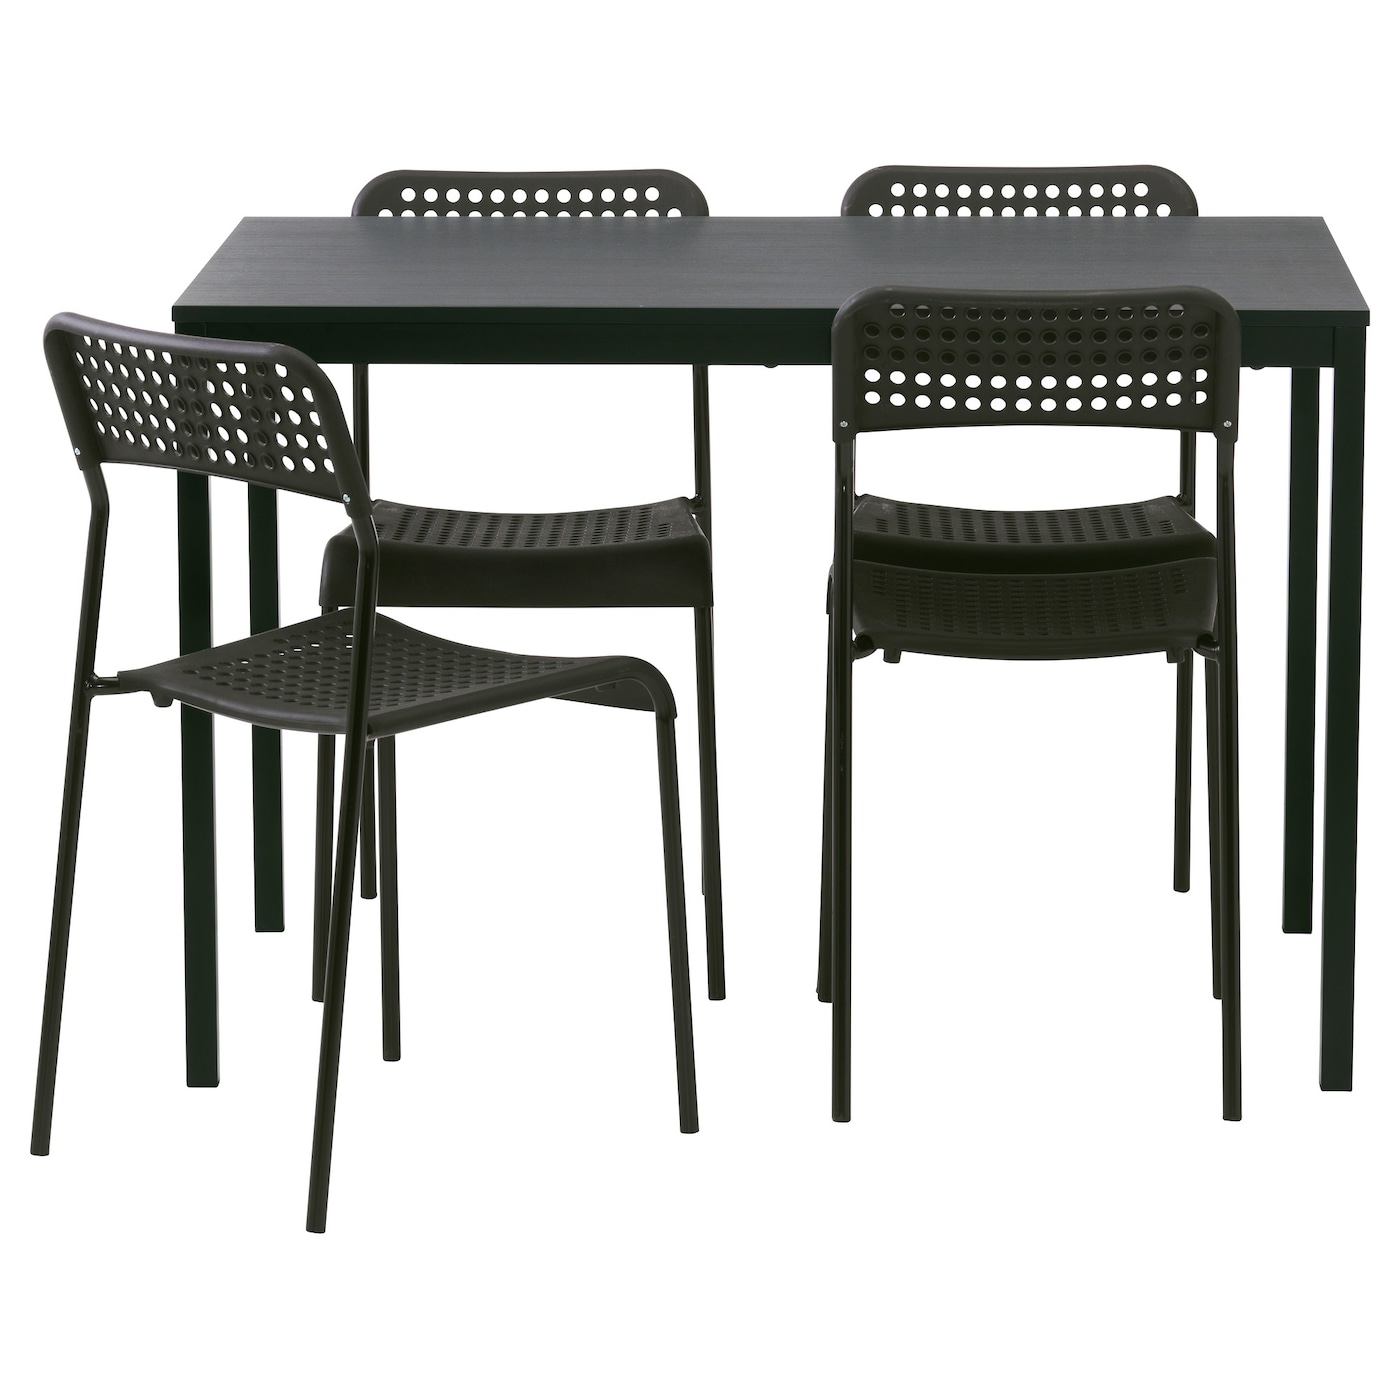 IKEA TREND ADDE Table And 4 Chairs